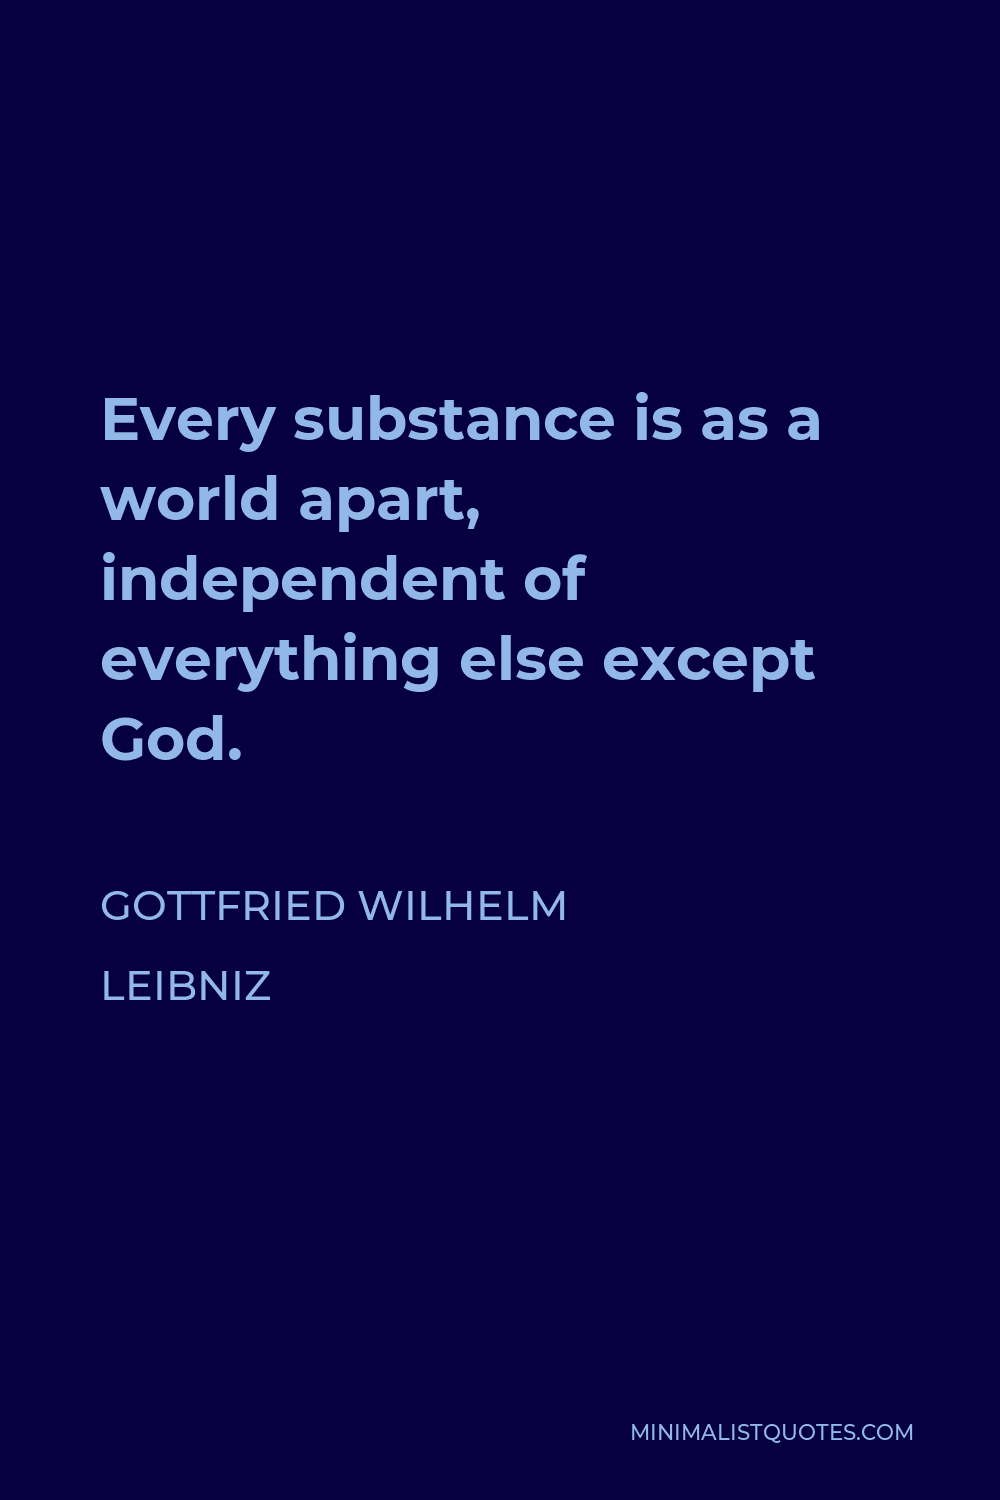 Gottfried Wilhelm Leibniz Quote - Every substance is as a world apart, independent of everything else except God.